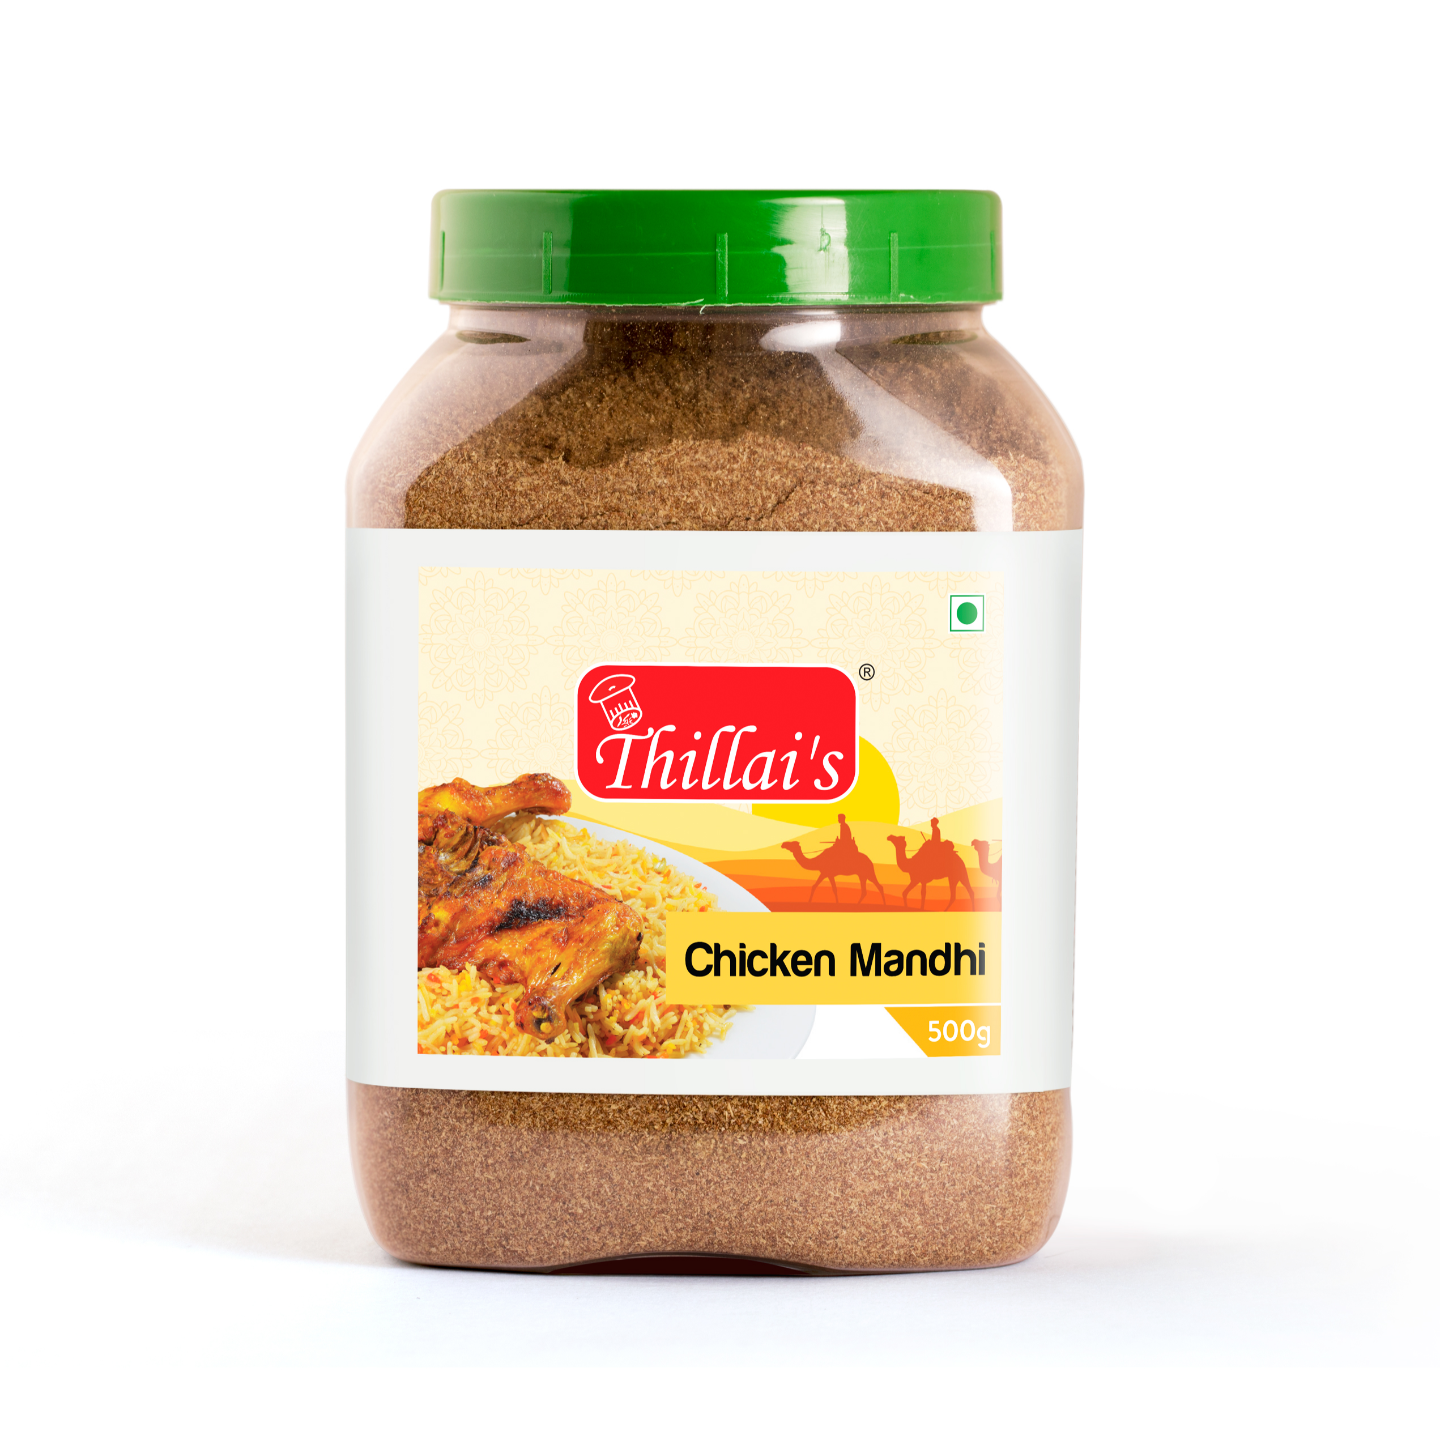 Thillais Arabian Mandi Fresh Ground Spice Mix-500g